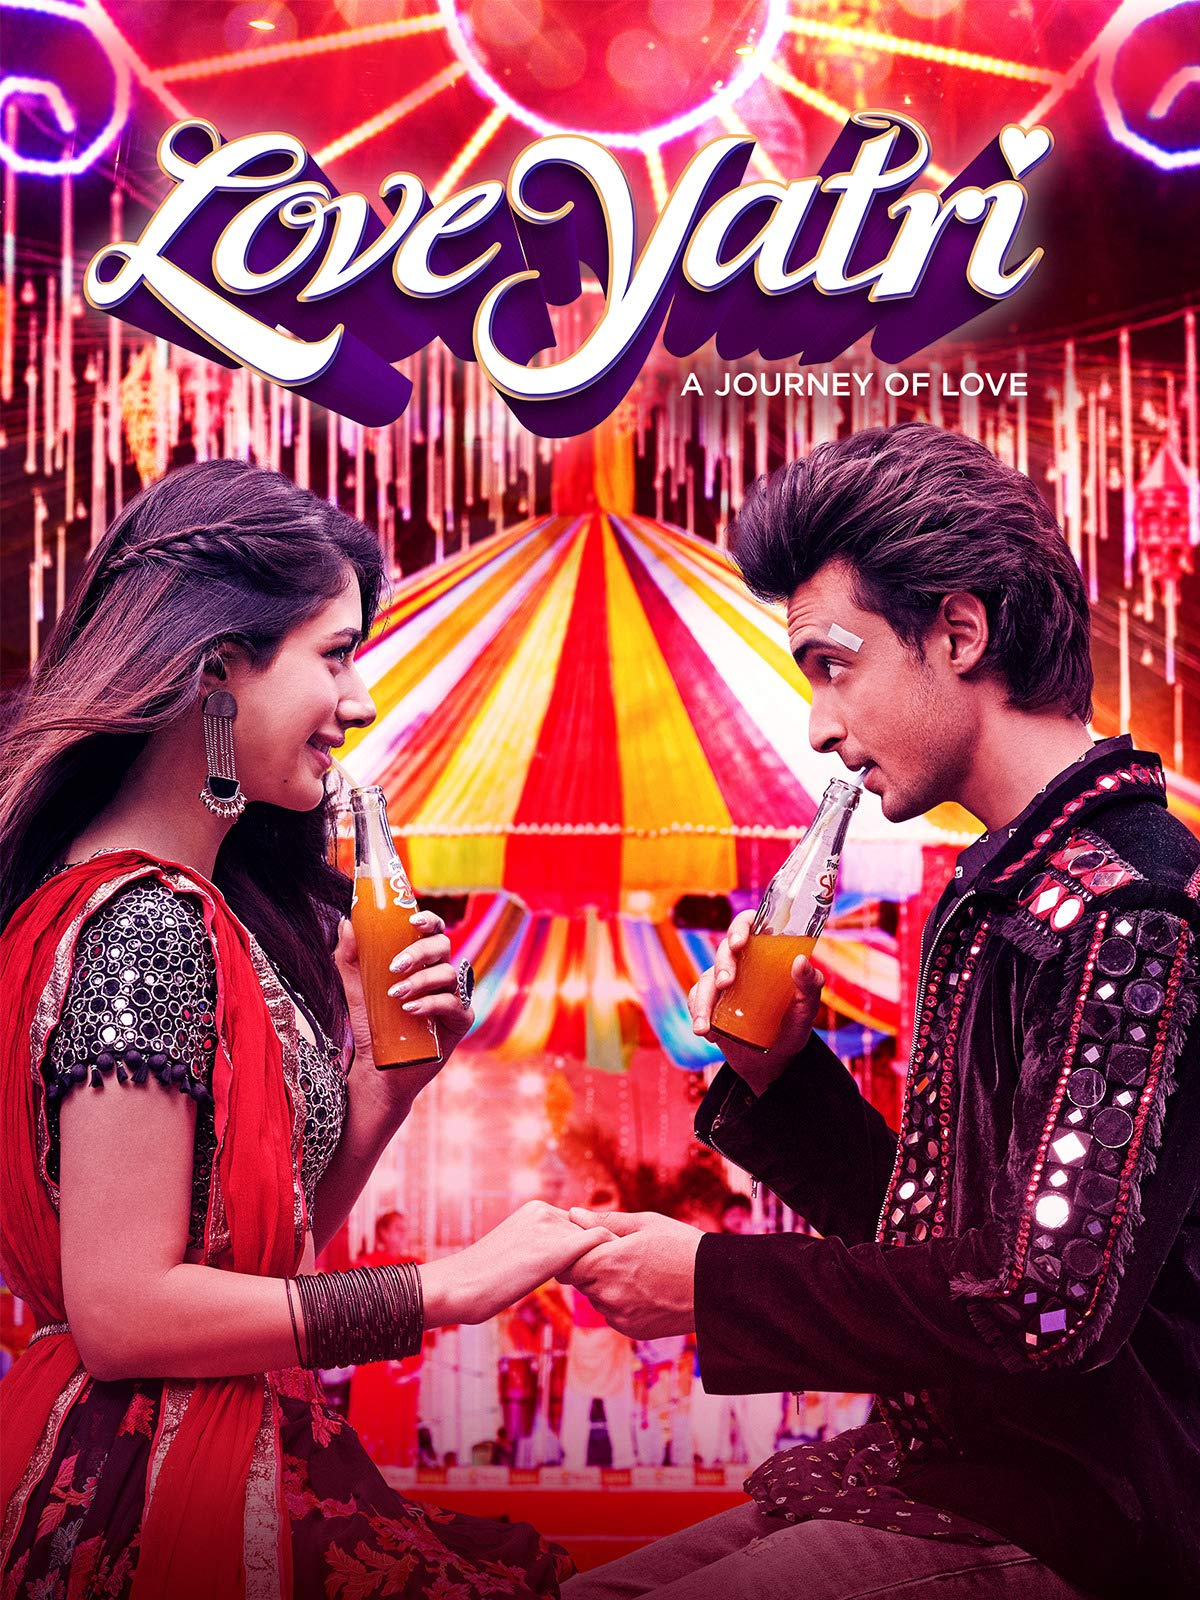 Loveyatri - The Journey of Love